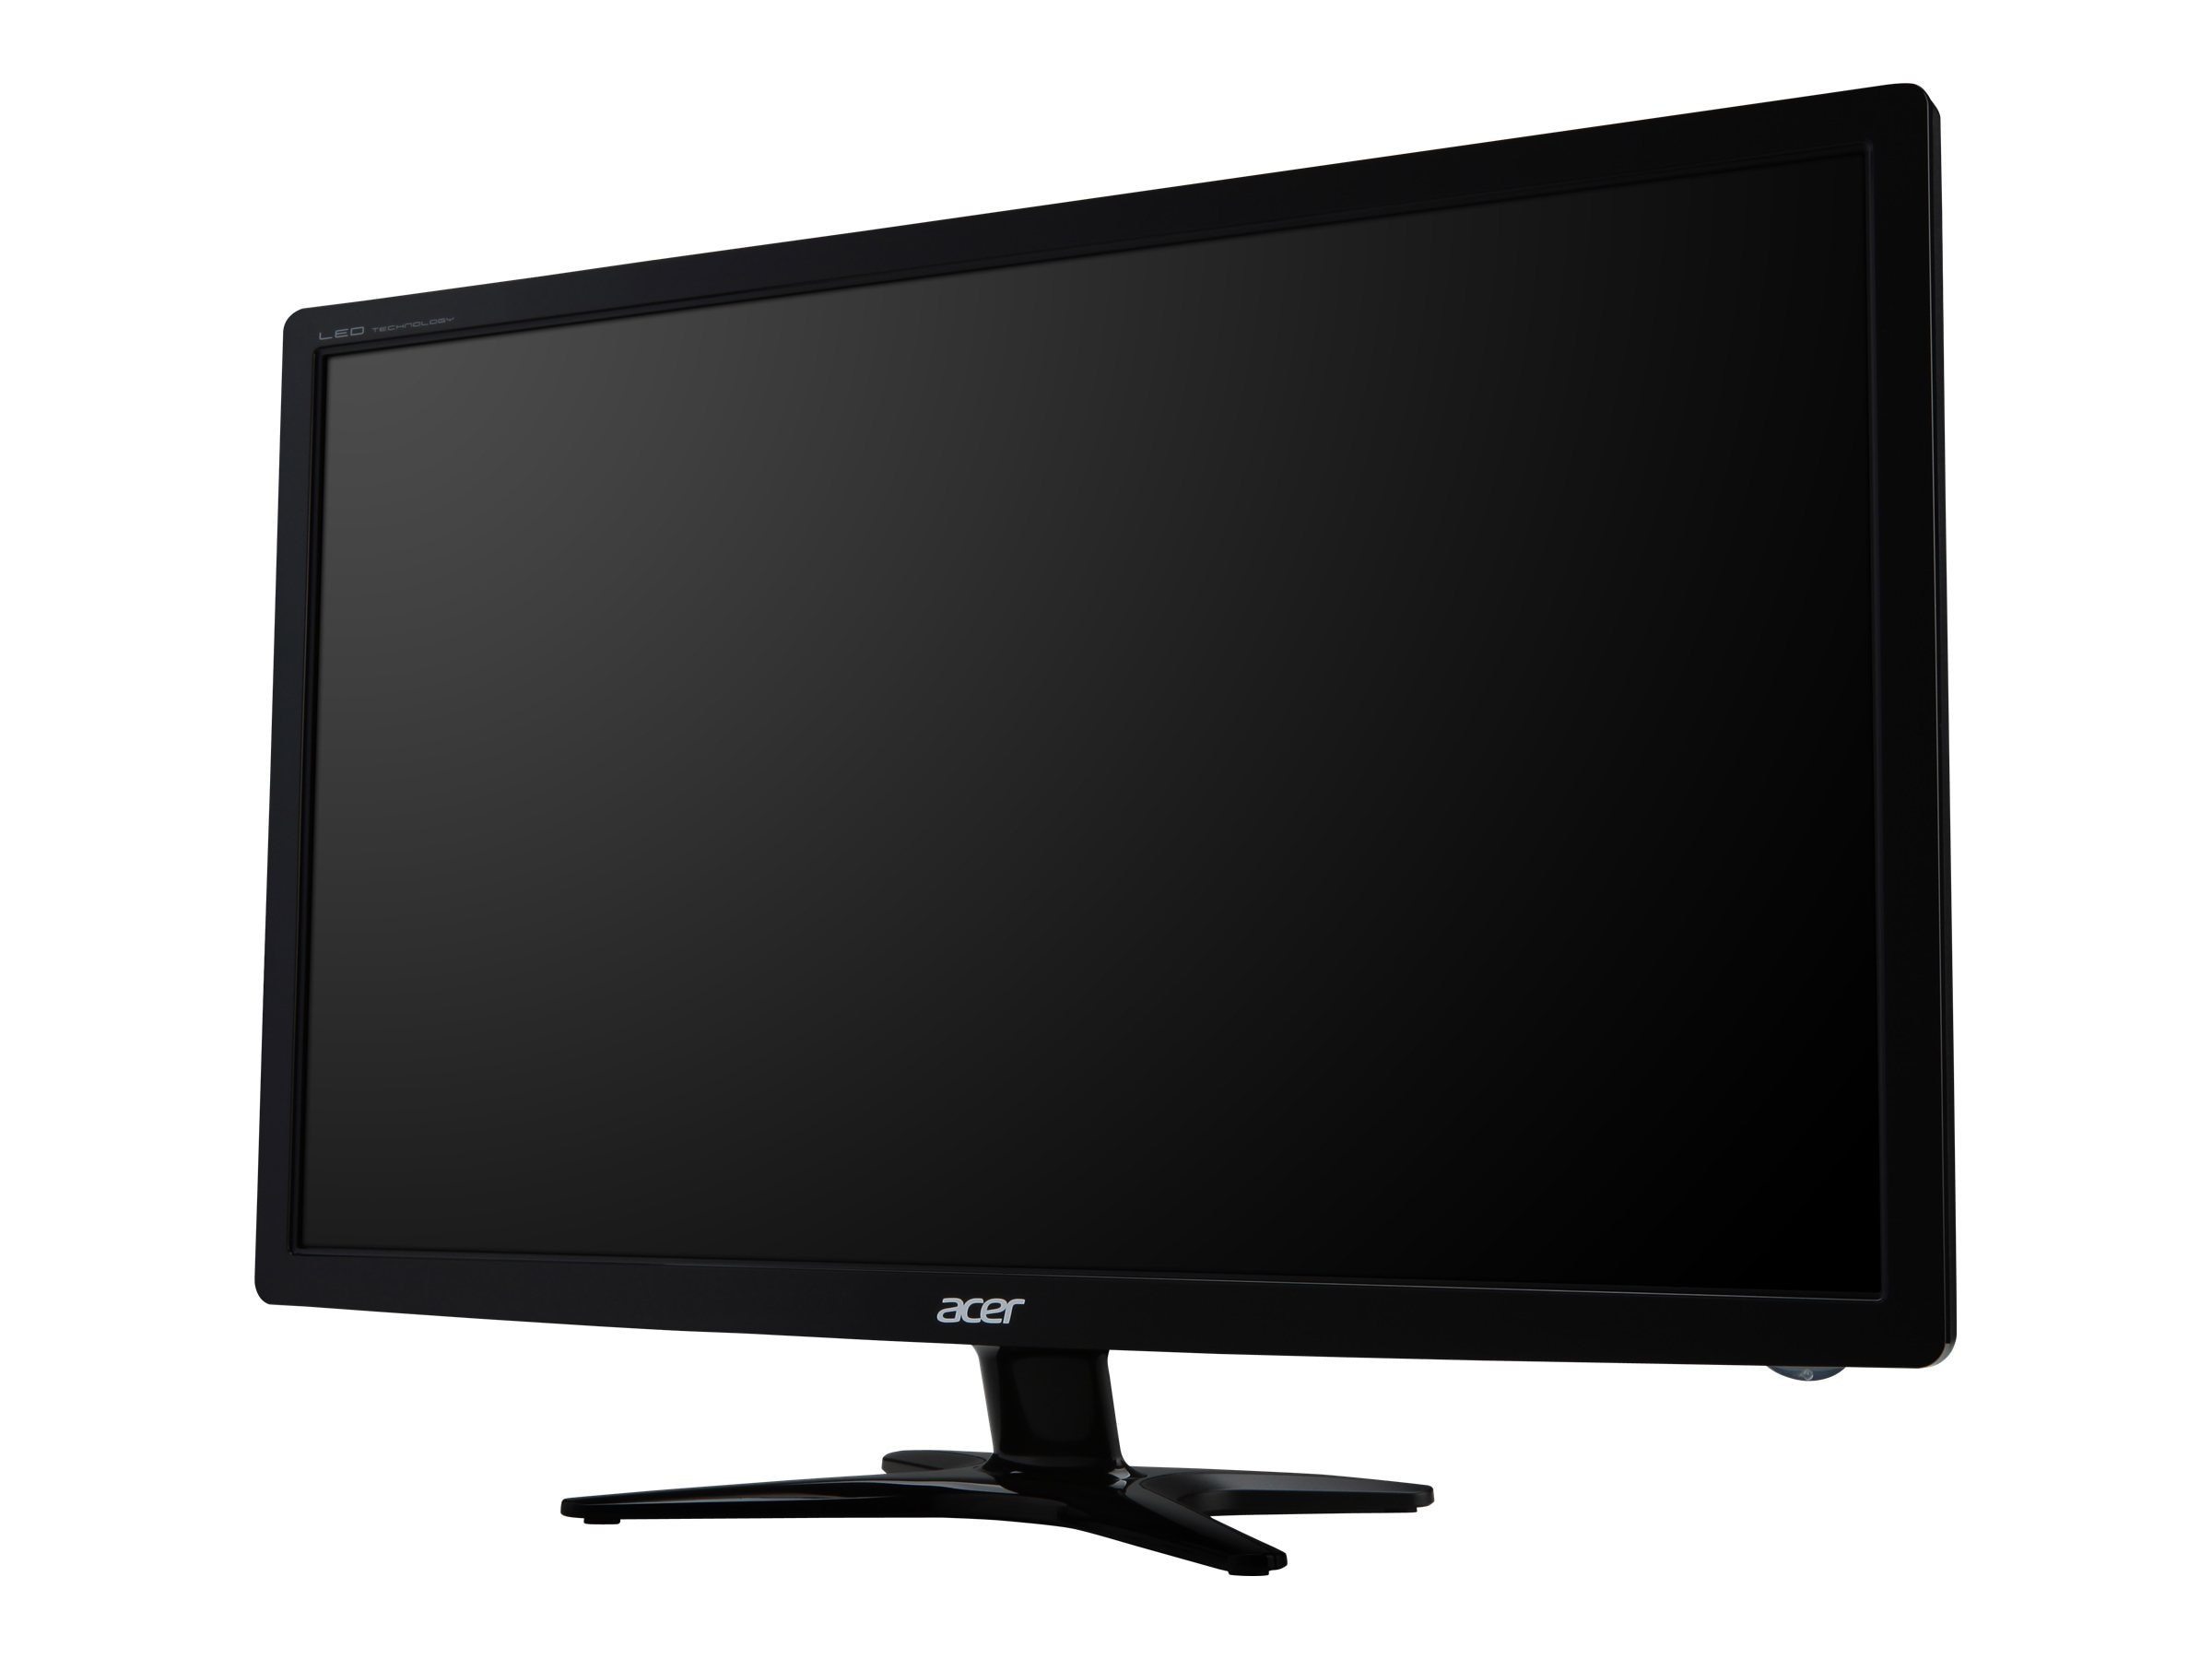 Acer 27 G276HL Full HD LED-LCD Monitor, Black, UM.HG6AA.G01